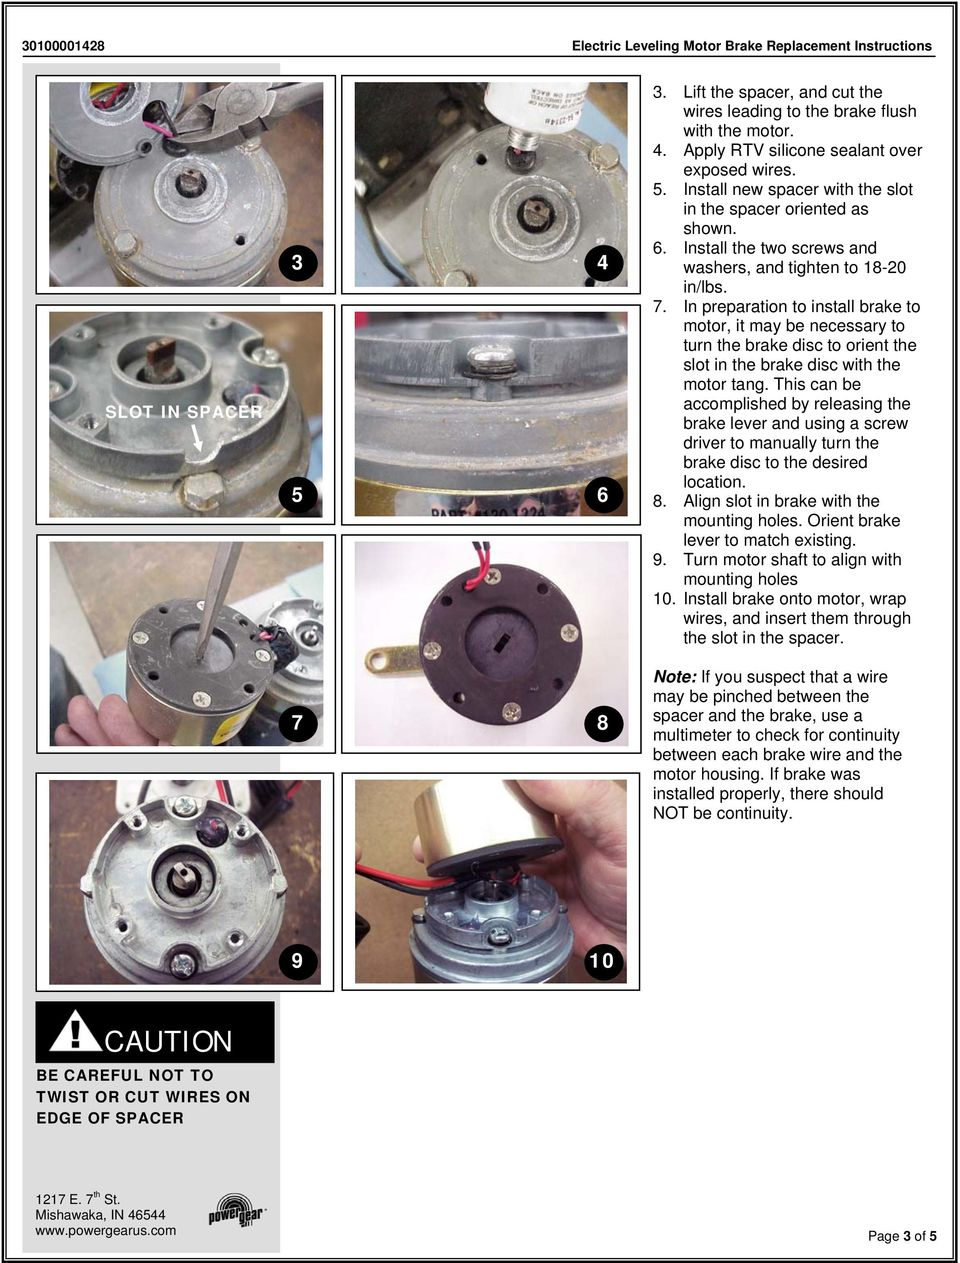 In preparation to install brake to motor, it may be necessary to turn the brake disc to orient the slot in the brake disc with the motor tang.